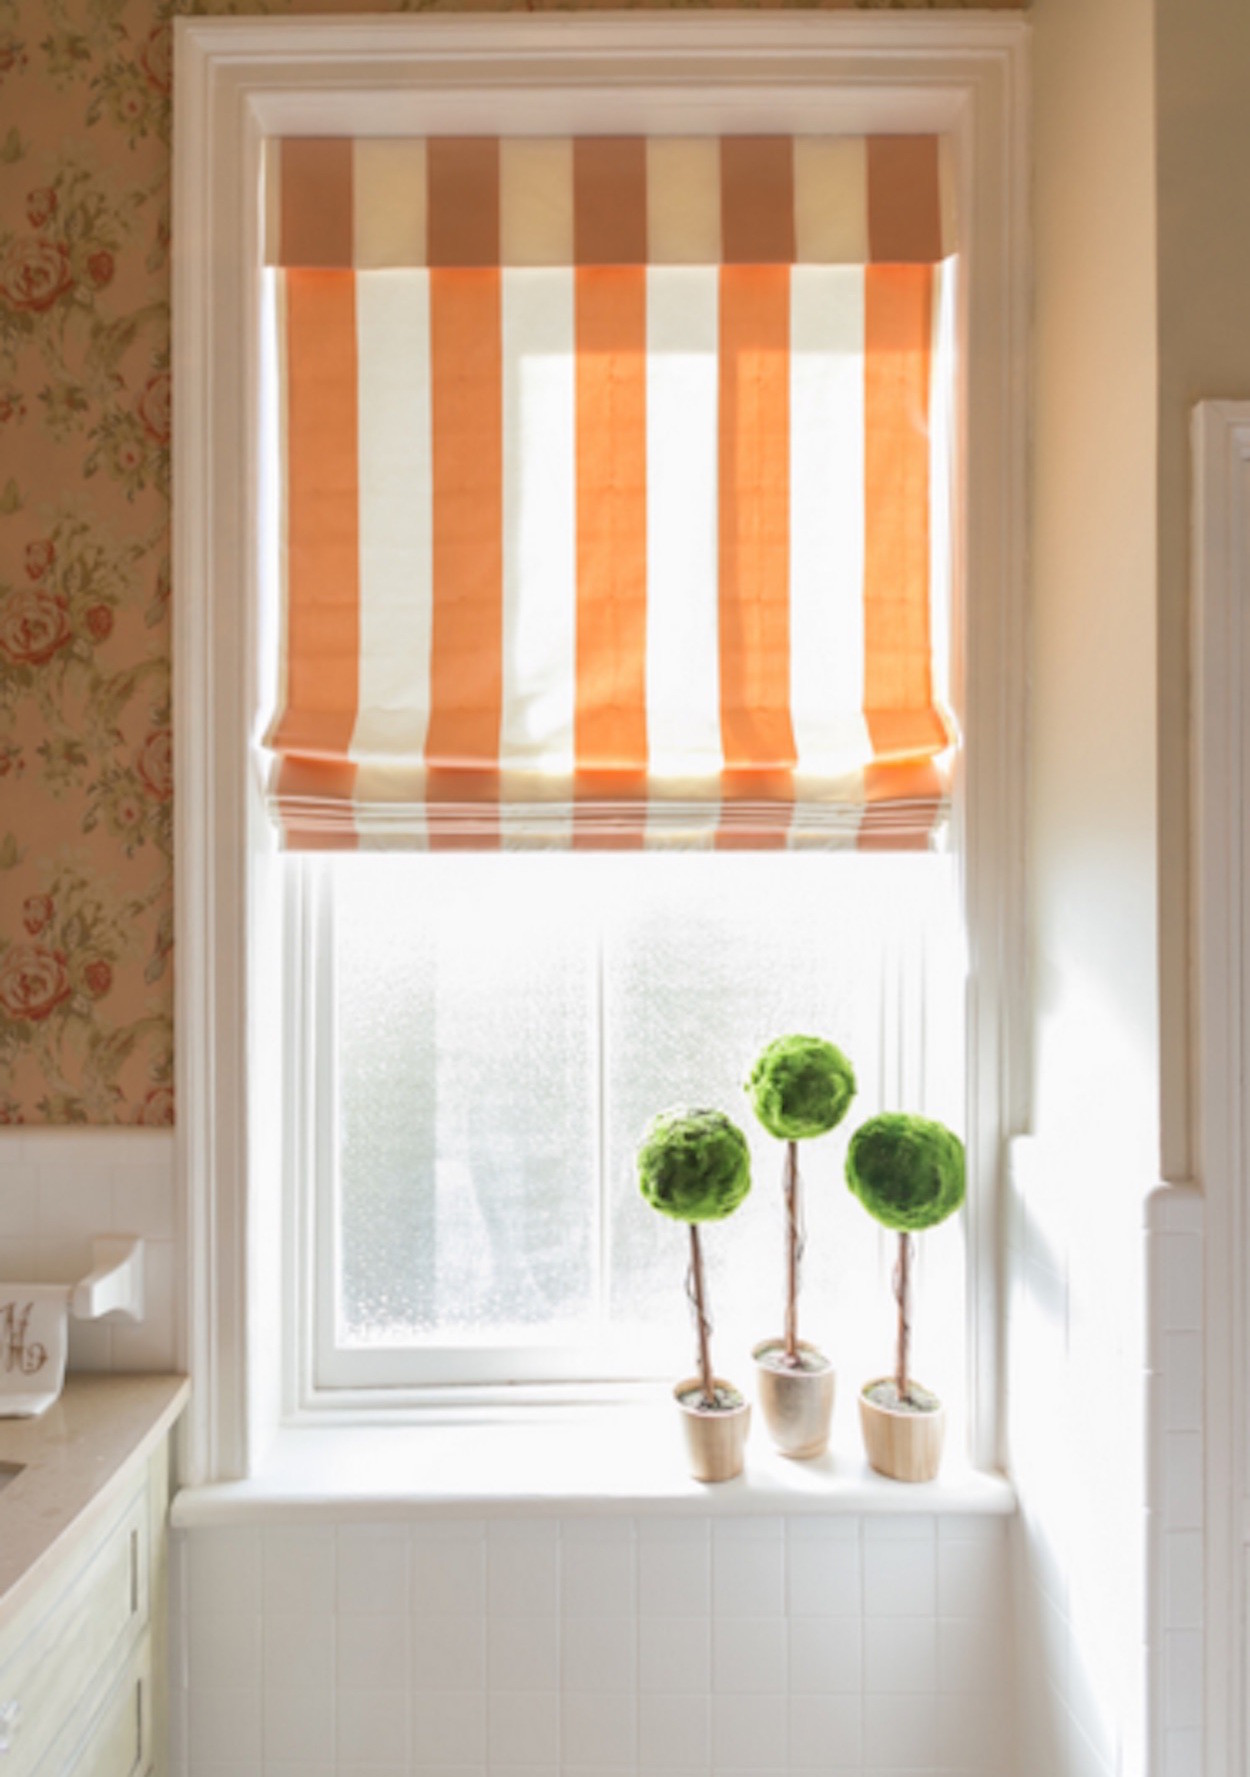 7 Different Bathroom Window Treatments You Might Not Have Thought Of |  Martha Stewart